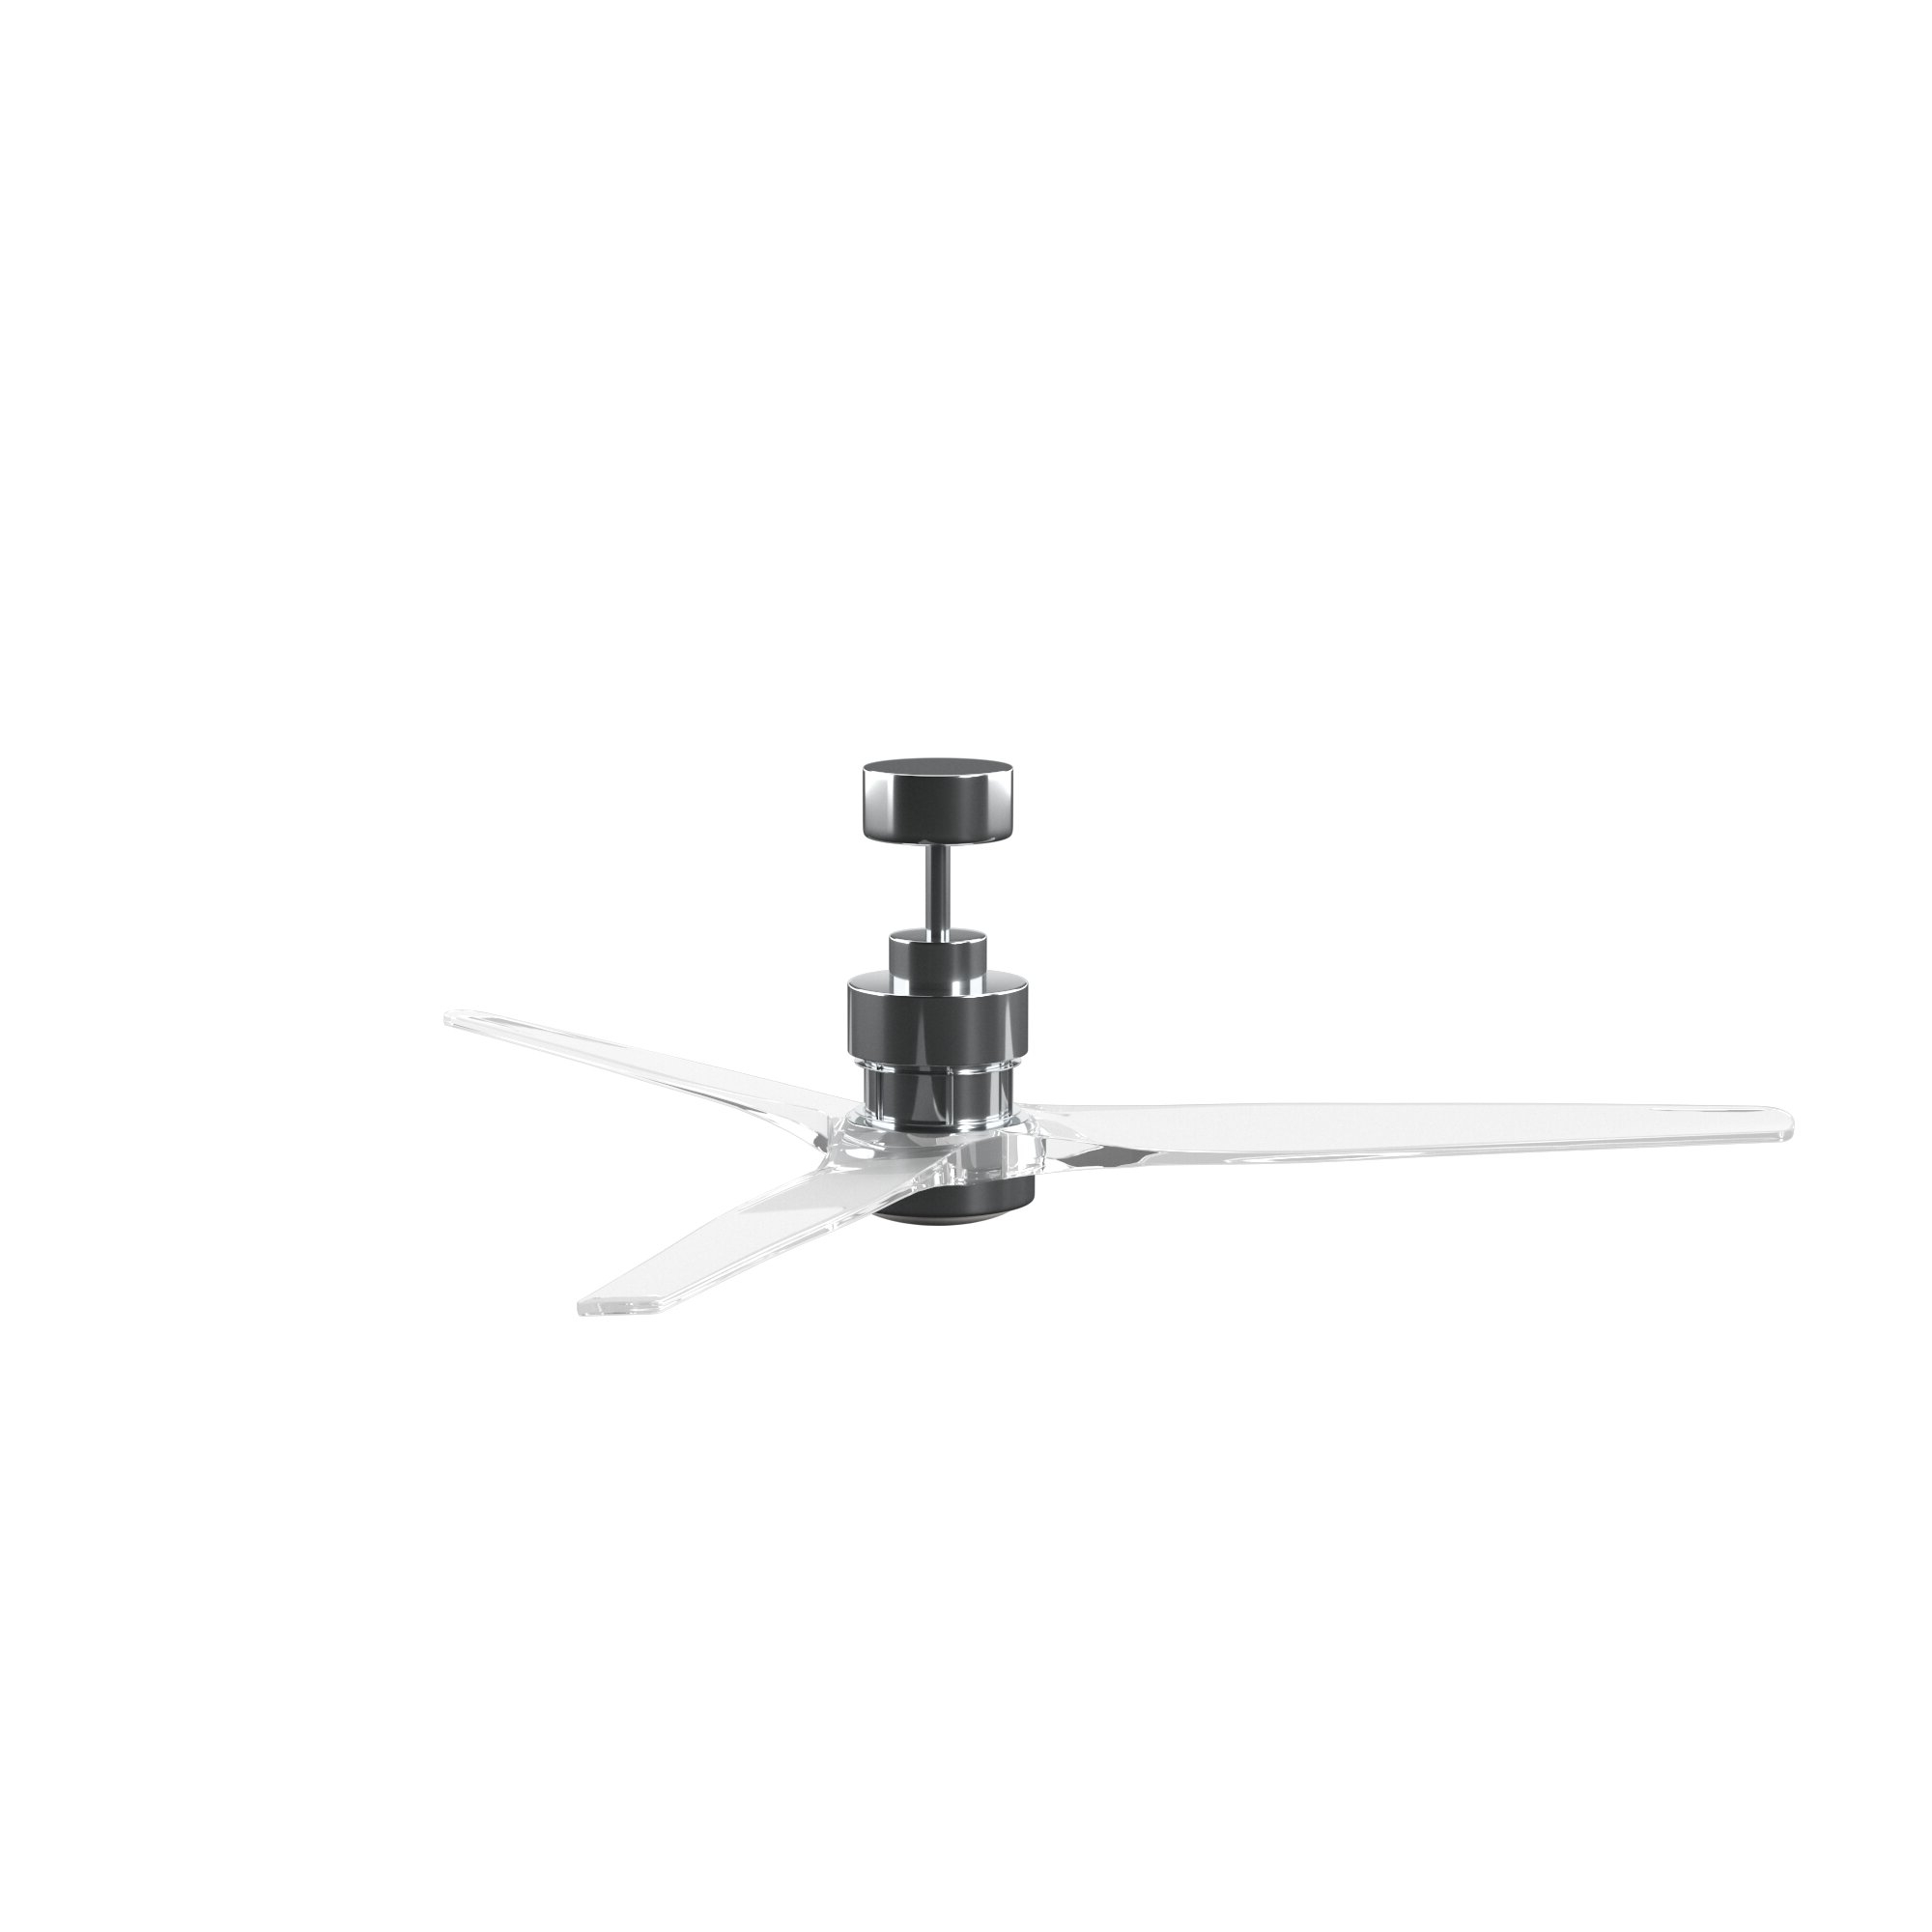 """60"""" Mcdaniels 3 Blade Ceiling Fan With Remote, Light Kit Included Intended For Favorite Corsa 3 Blade Ceiling Fans (View 19 of 20)"""